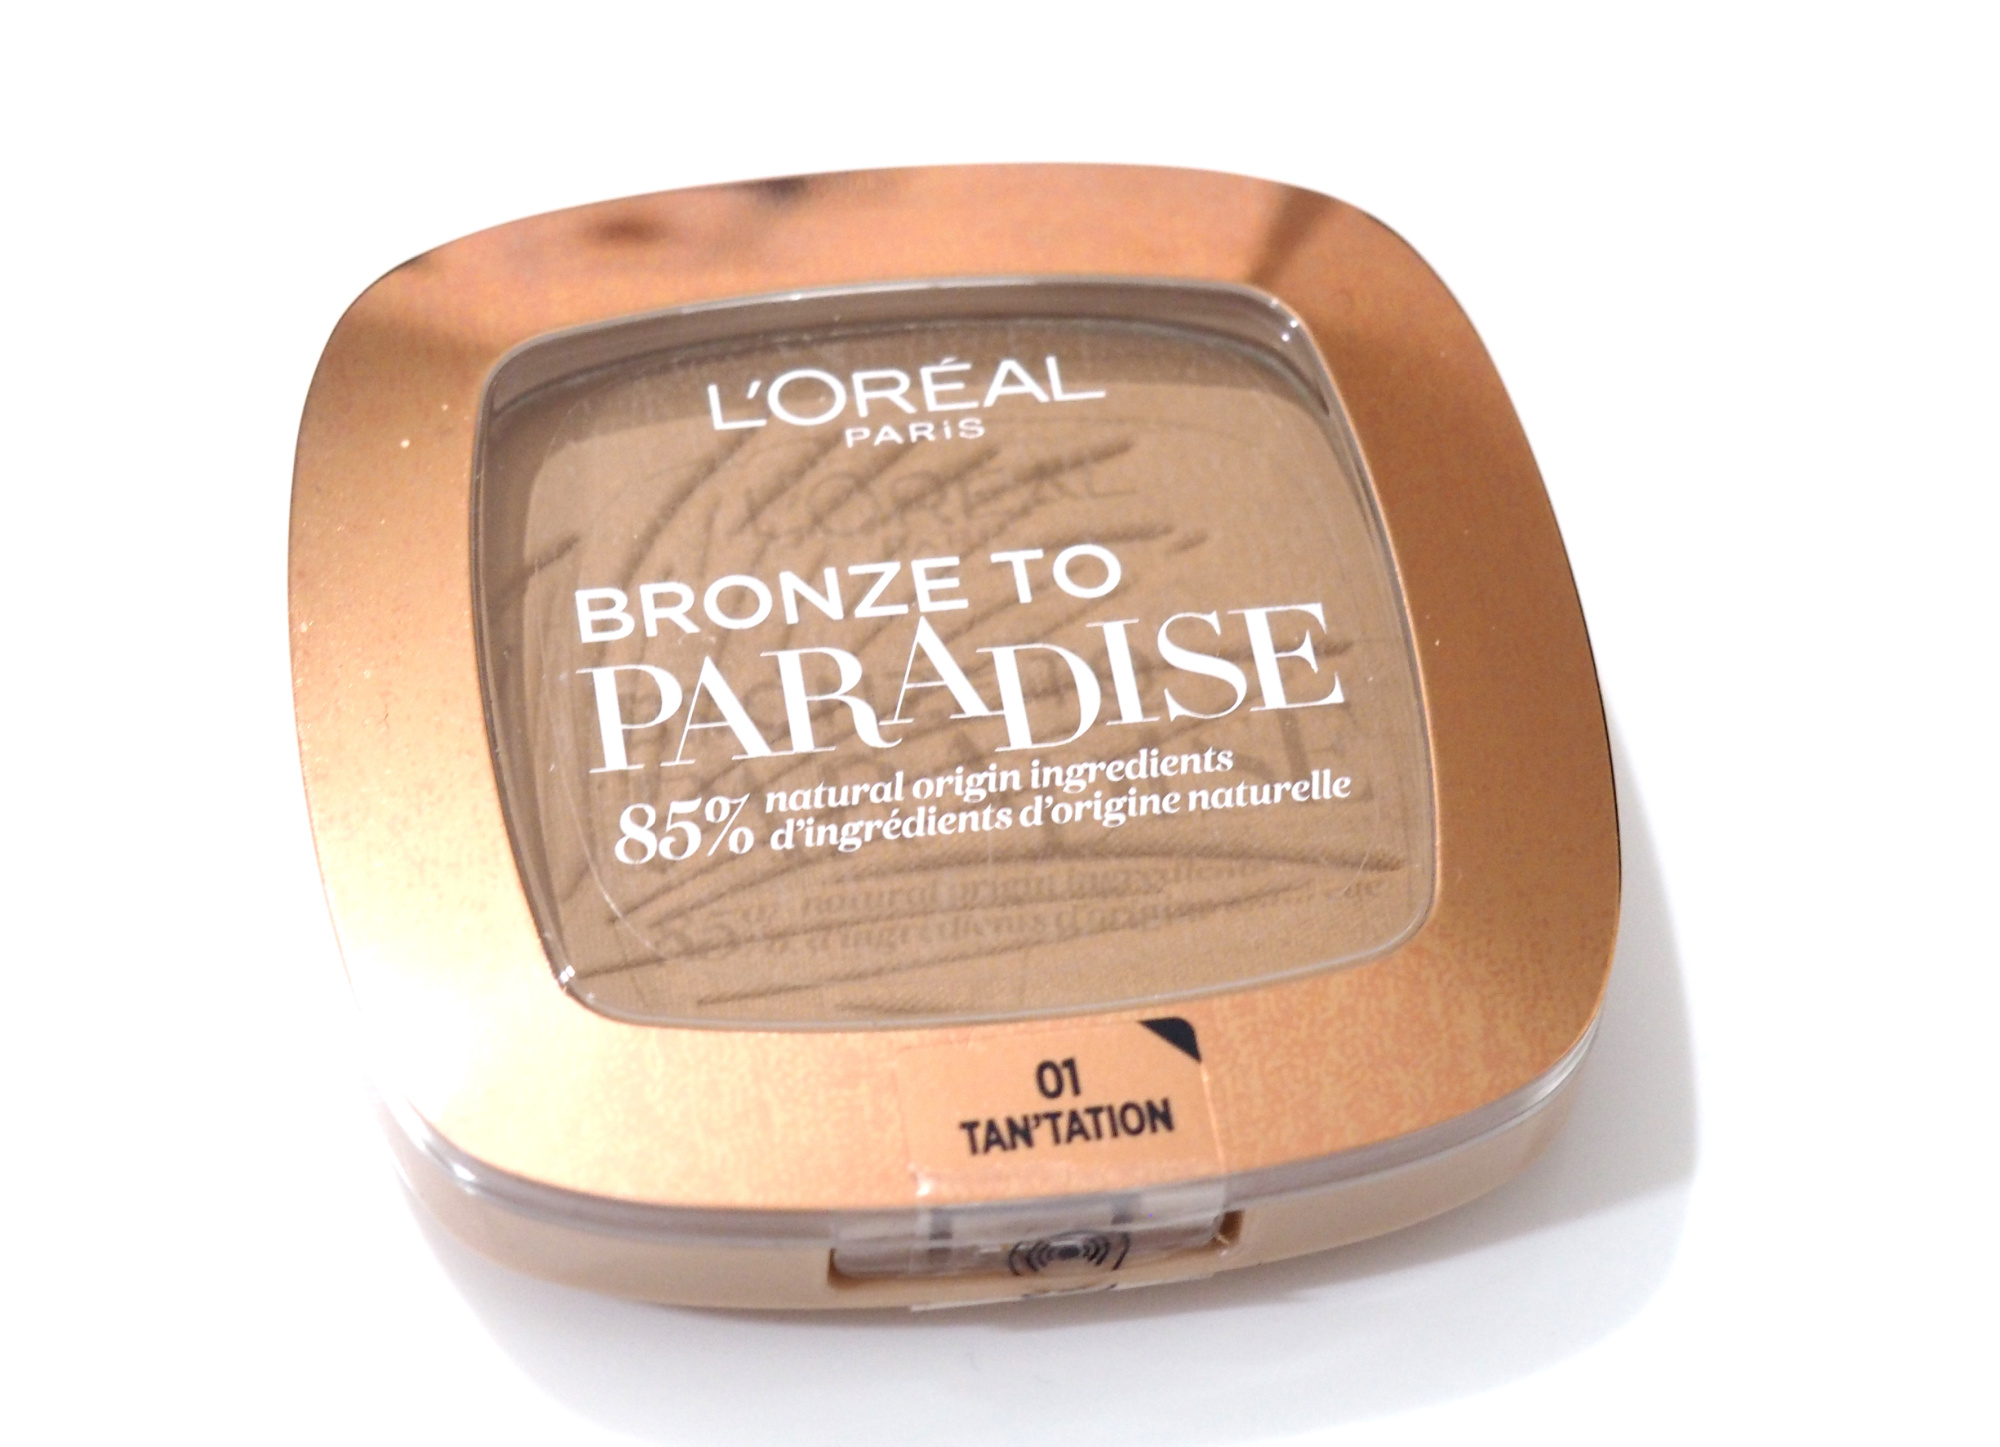 L'Oreal Bronze To Paradise Matte Sunkissed Bronzer